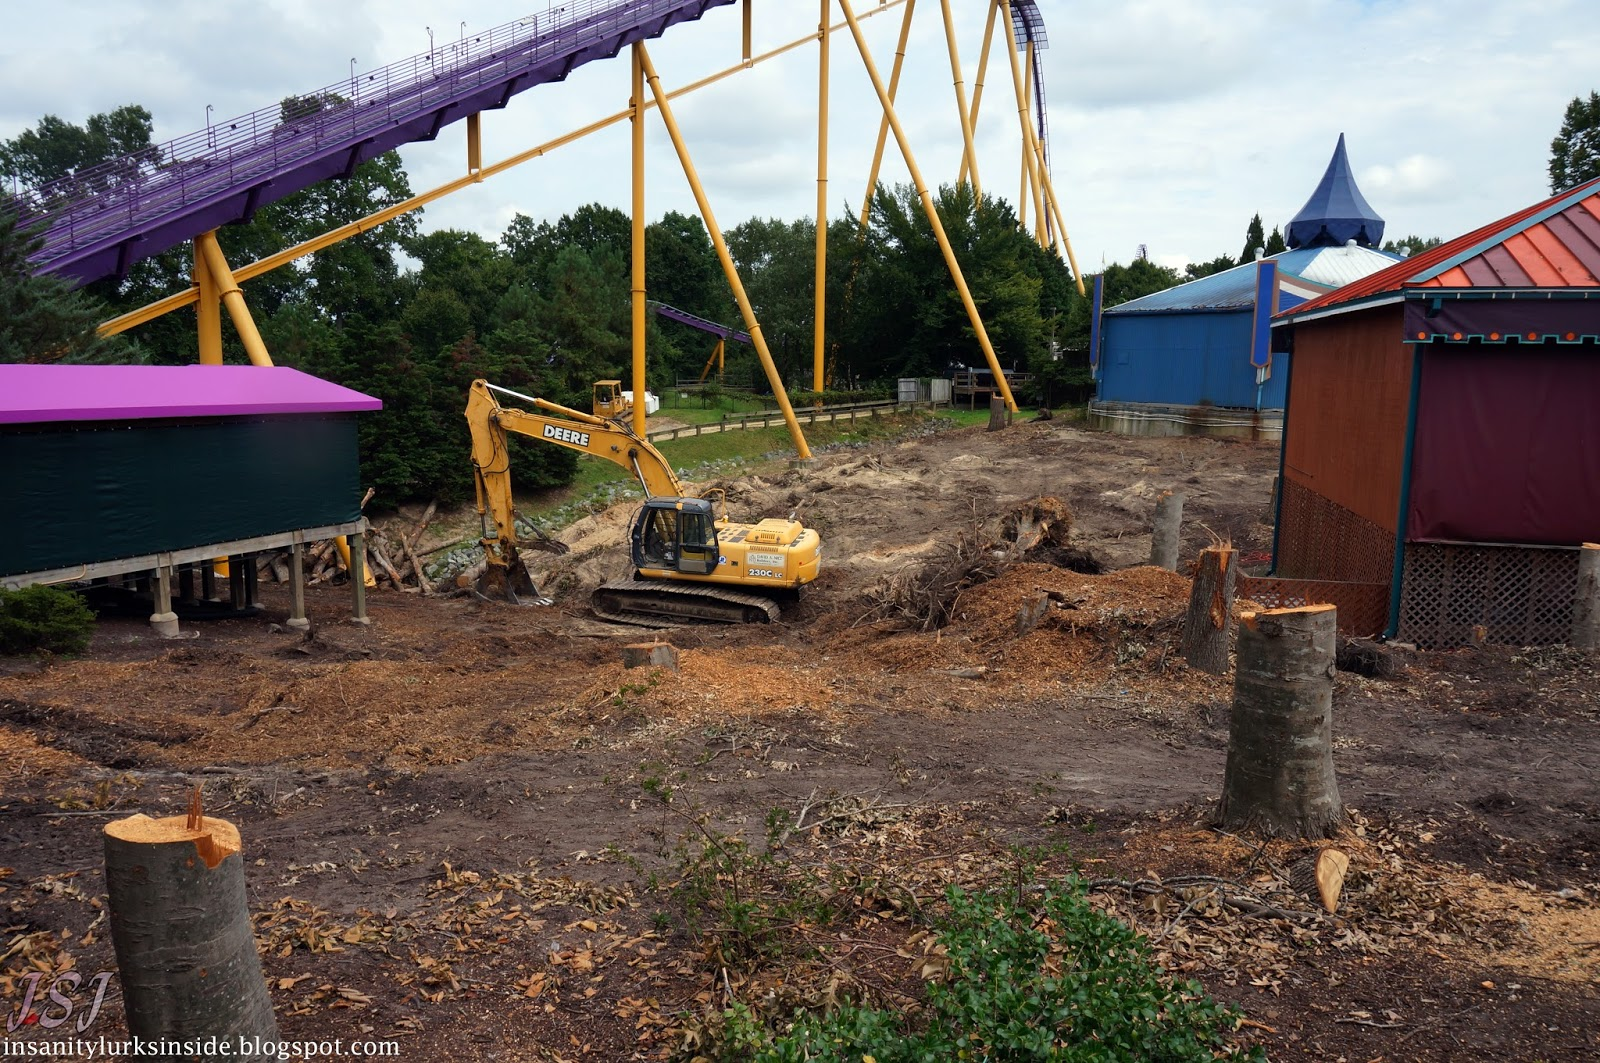 InSanity lurks Inside: Busch Gardens Williamsburg- New Coaster Track ...